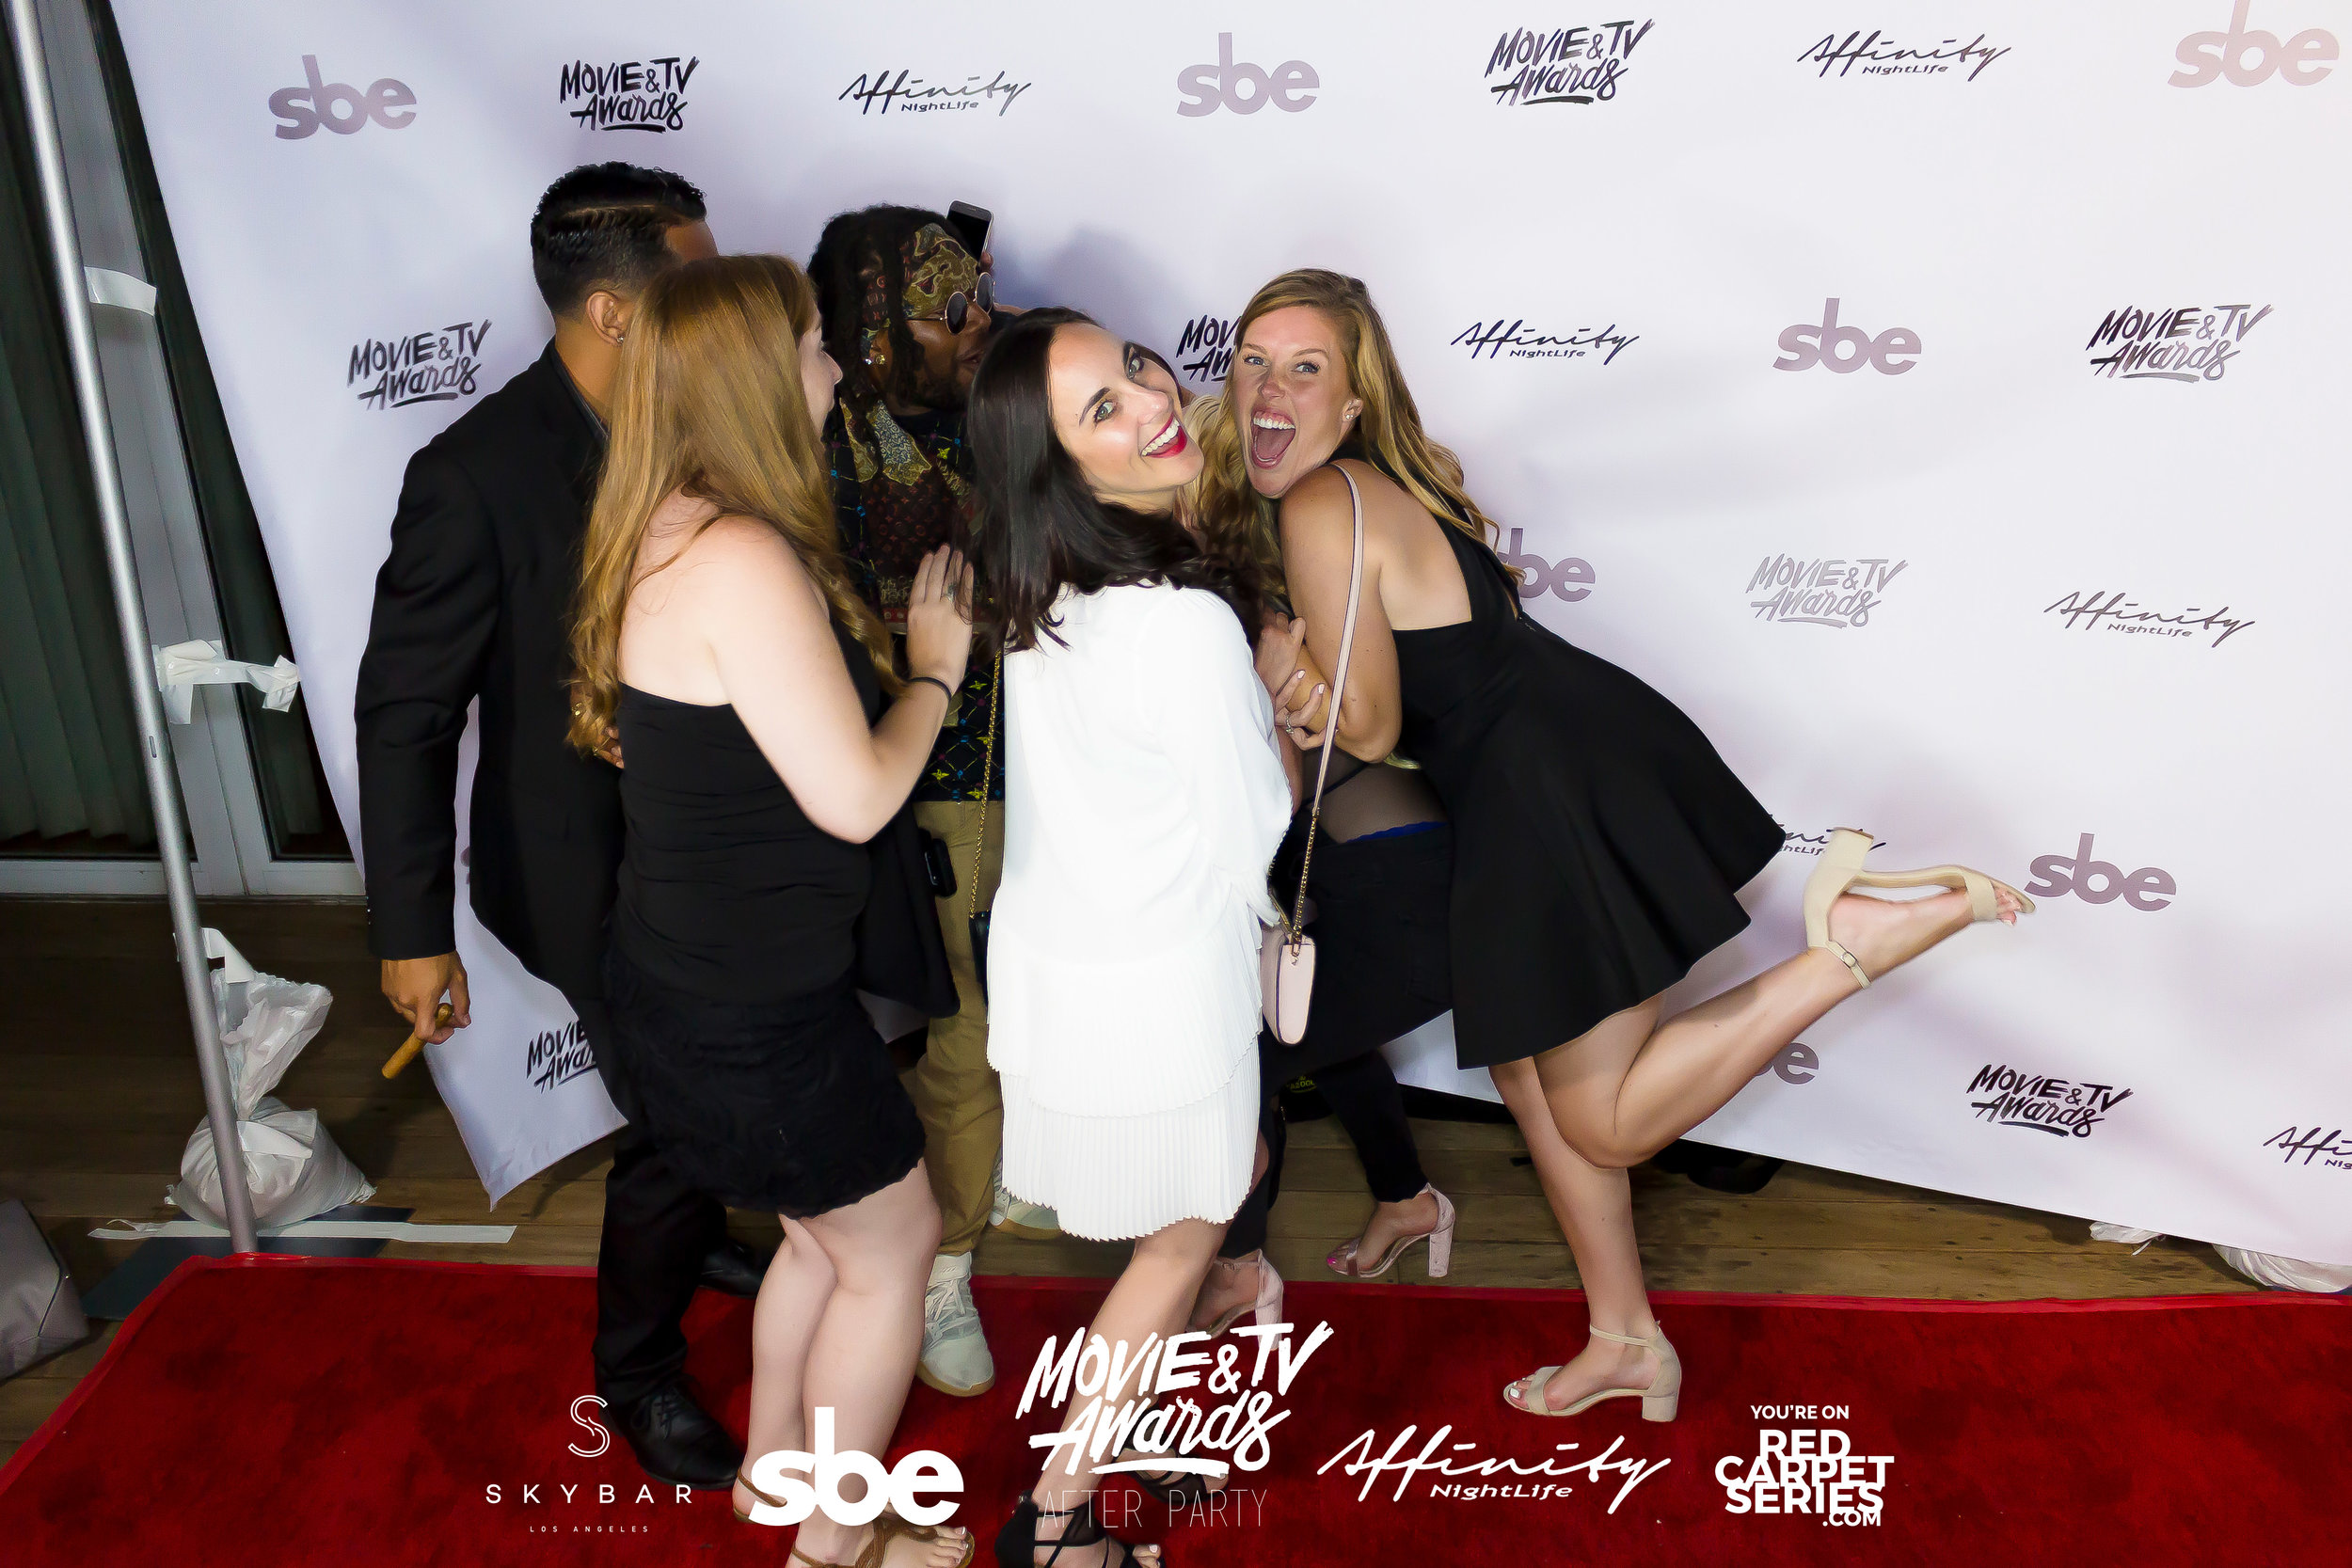 Affinity Nightlife MTV Movie & TV Awards After Party - Skybar at Mondrian - 06-15-19 - Vol. 2_134.jpg